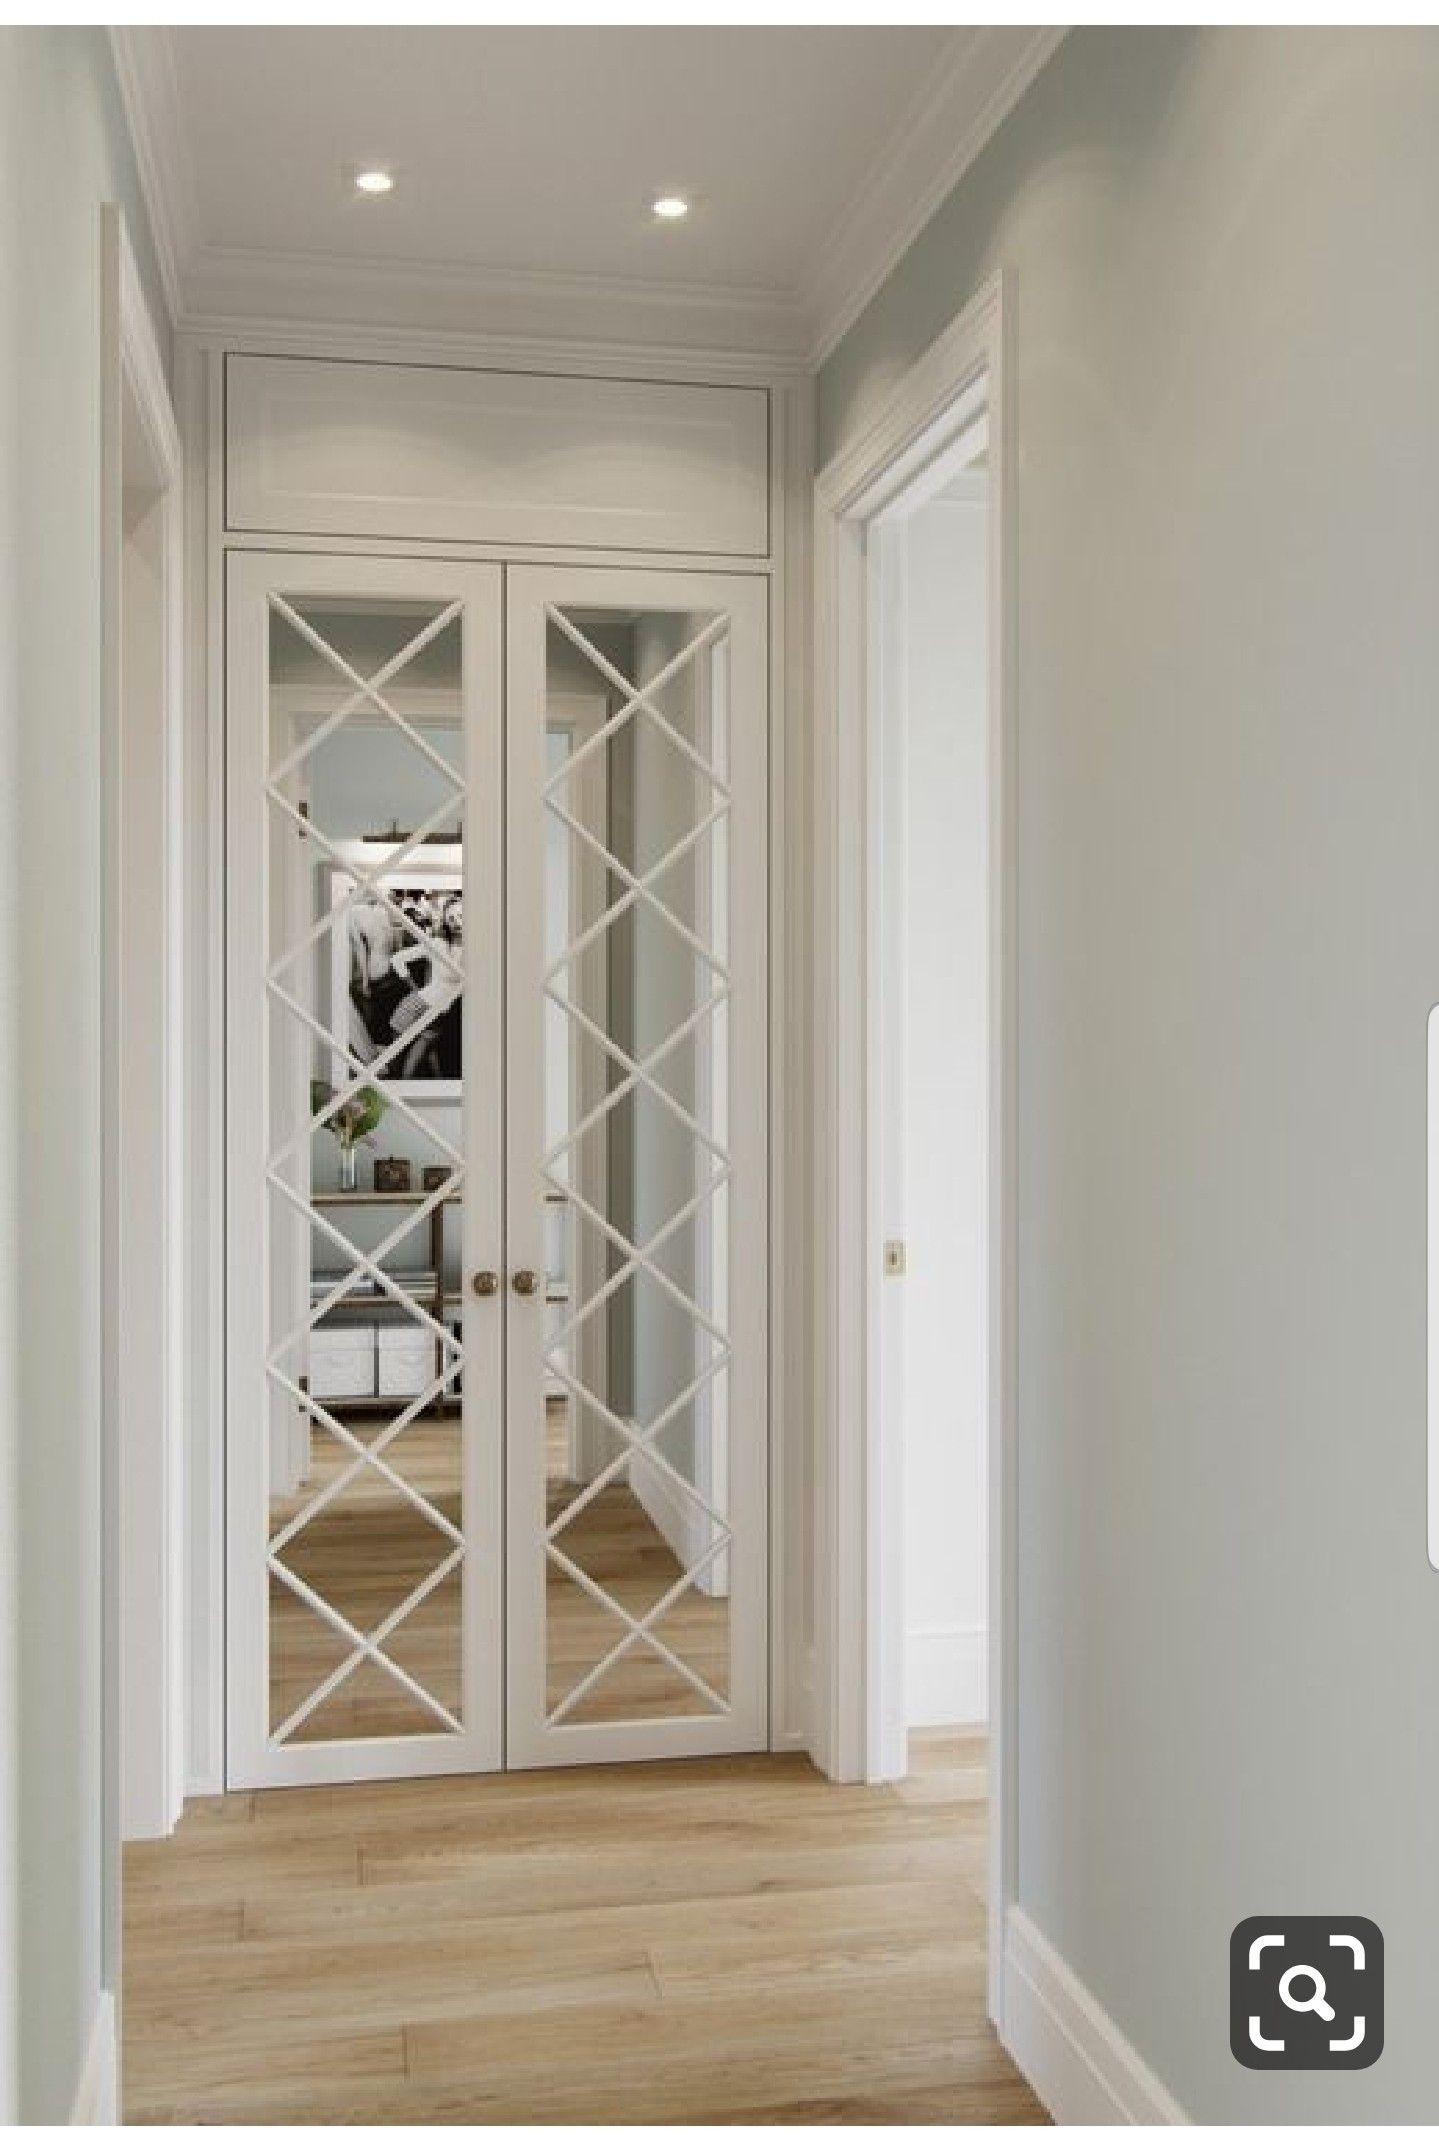 Excellent Proportions On These White French Doors With